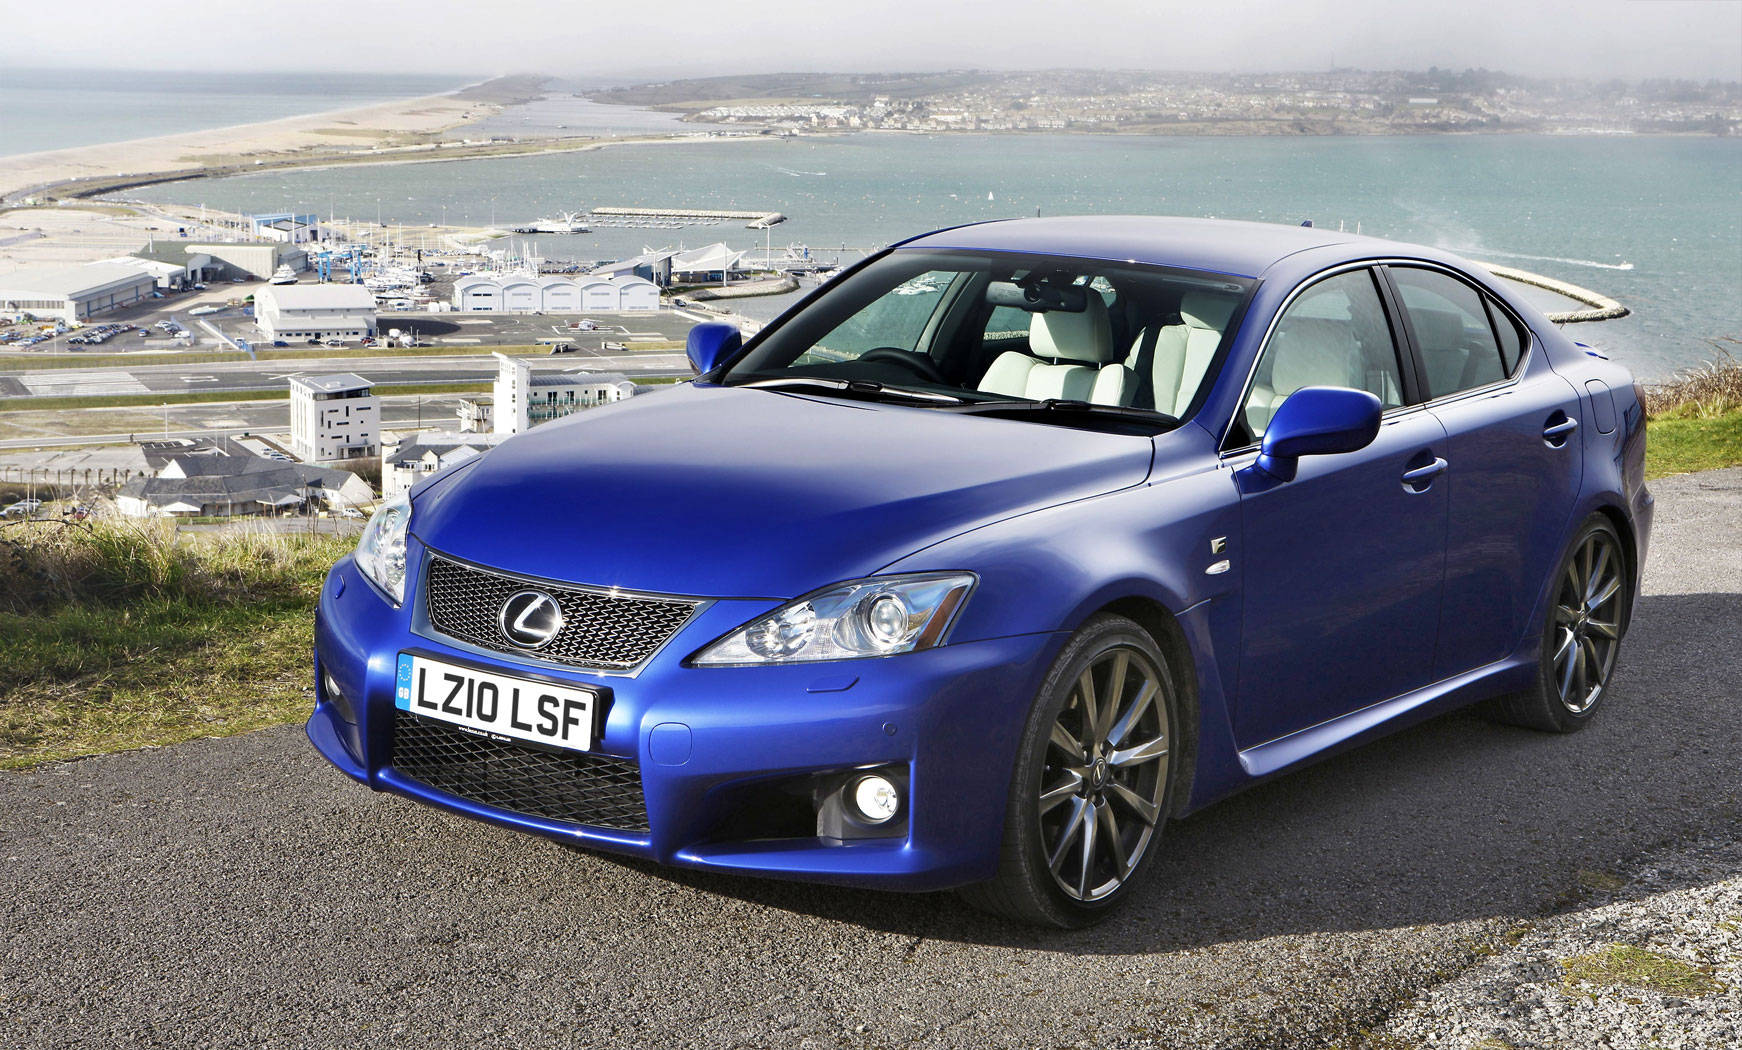 2010 Lexus Is F #6